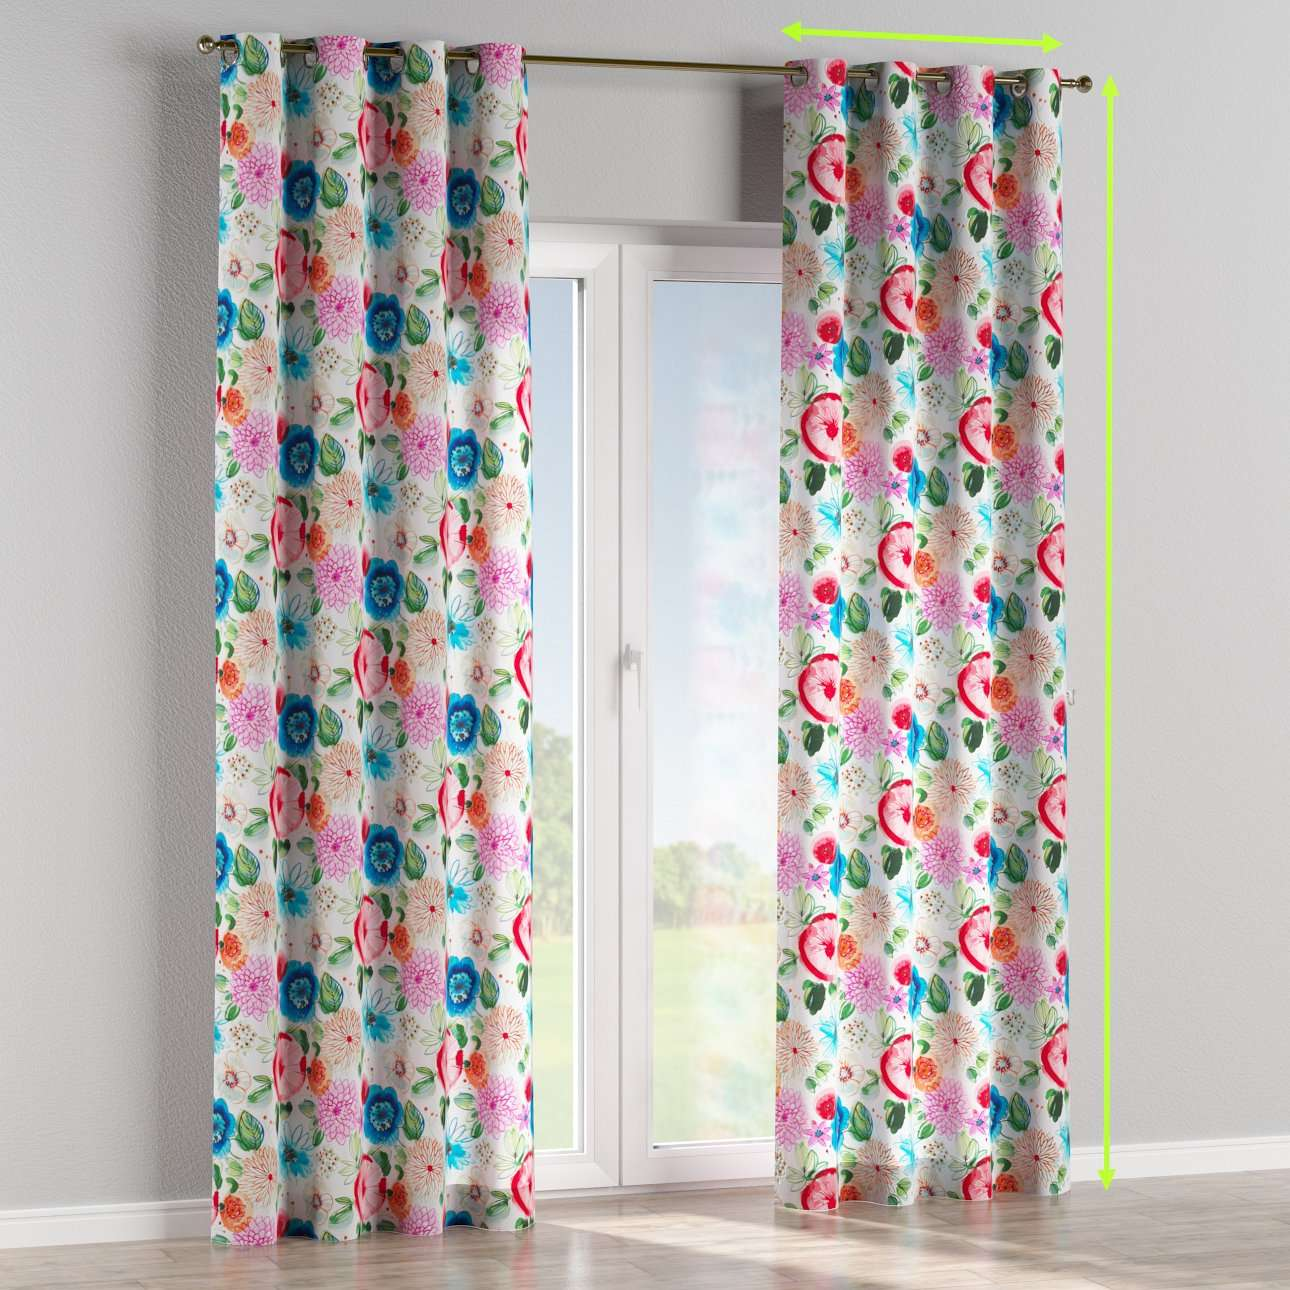 Eyelet curtains in collection New Art, fabric: 140-24